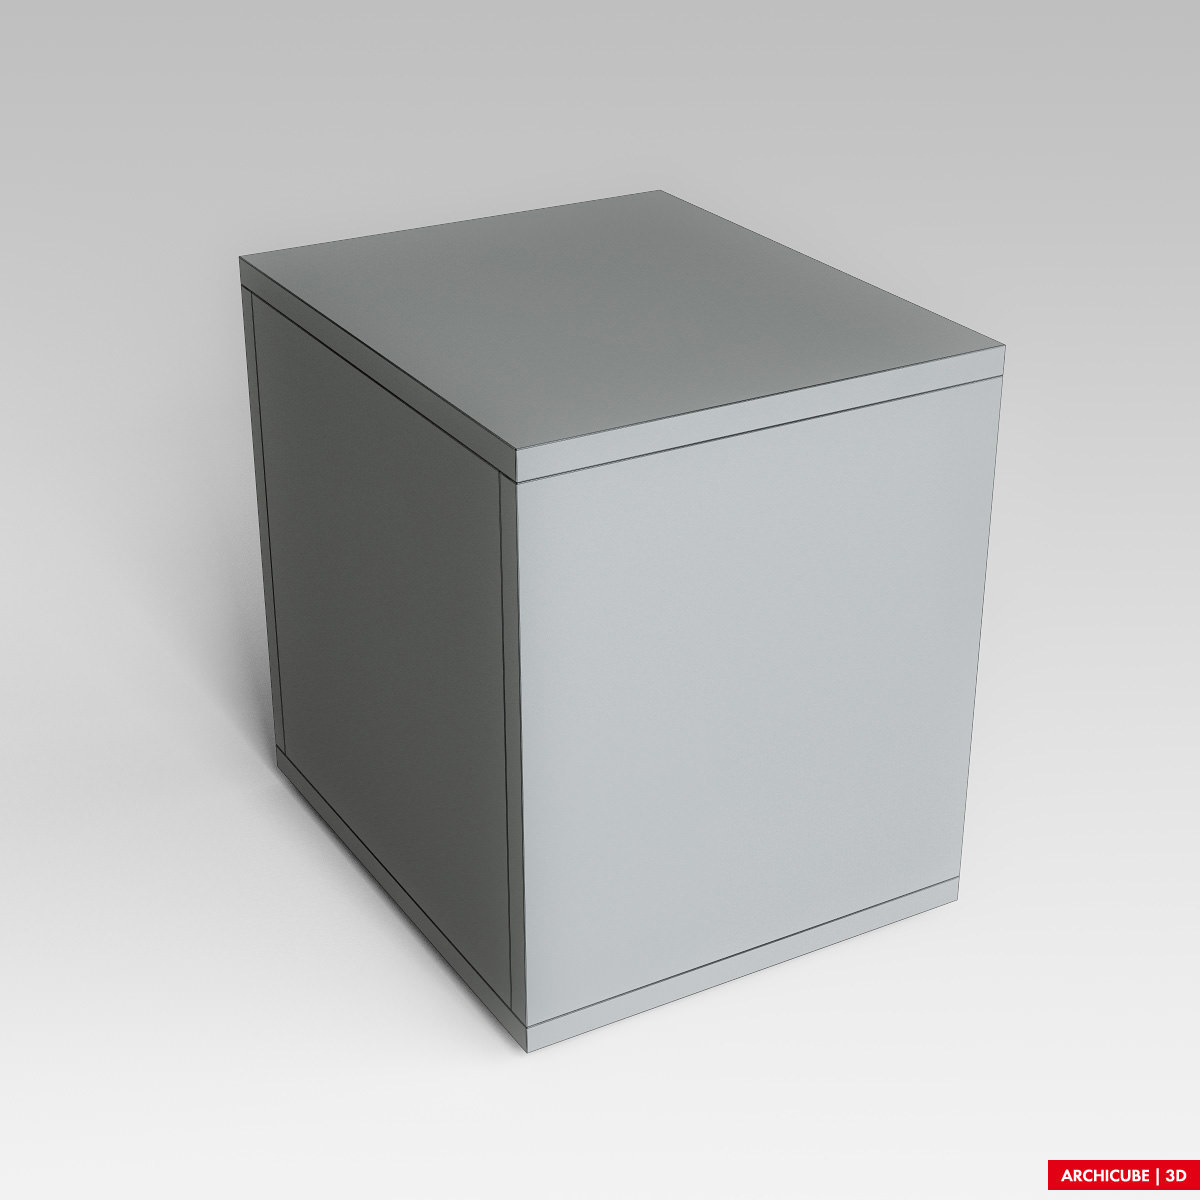 Ikea Hack Kitchen Island With Seating ~ bedside table 3d model likes 0 by archicube 3d